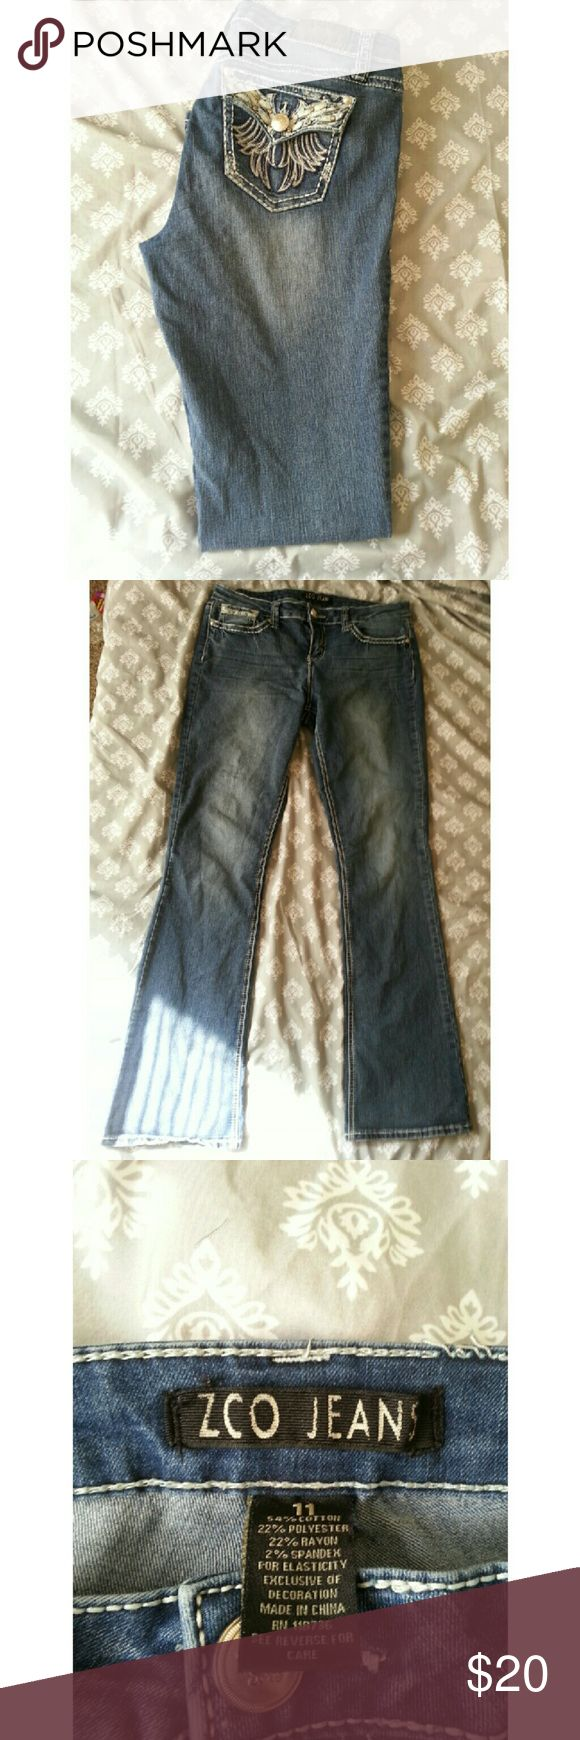 SALE!! ZCO Jeans These are a cute pair of jeans from ZCO Jeans! These jeans would be a great addition to your closet! These jeans are pre-owned, but are in great condition!  The Materials of these pair of jeans : 54% Cotton , 22% Polyester, 22 % Rayon, 2% Spandex  Feel free to make an offer!   // NO TRADES. // // Please don't advertise your closet. // ZCO Jeans